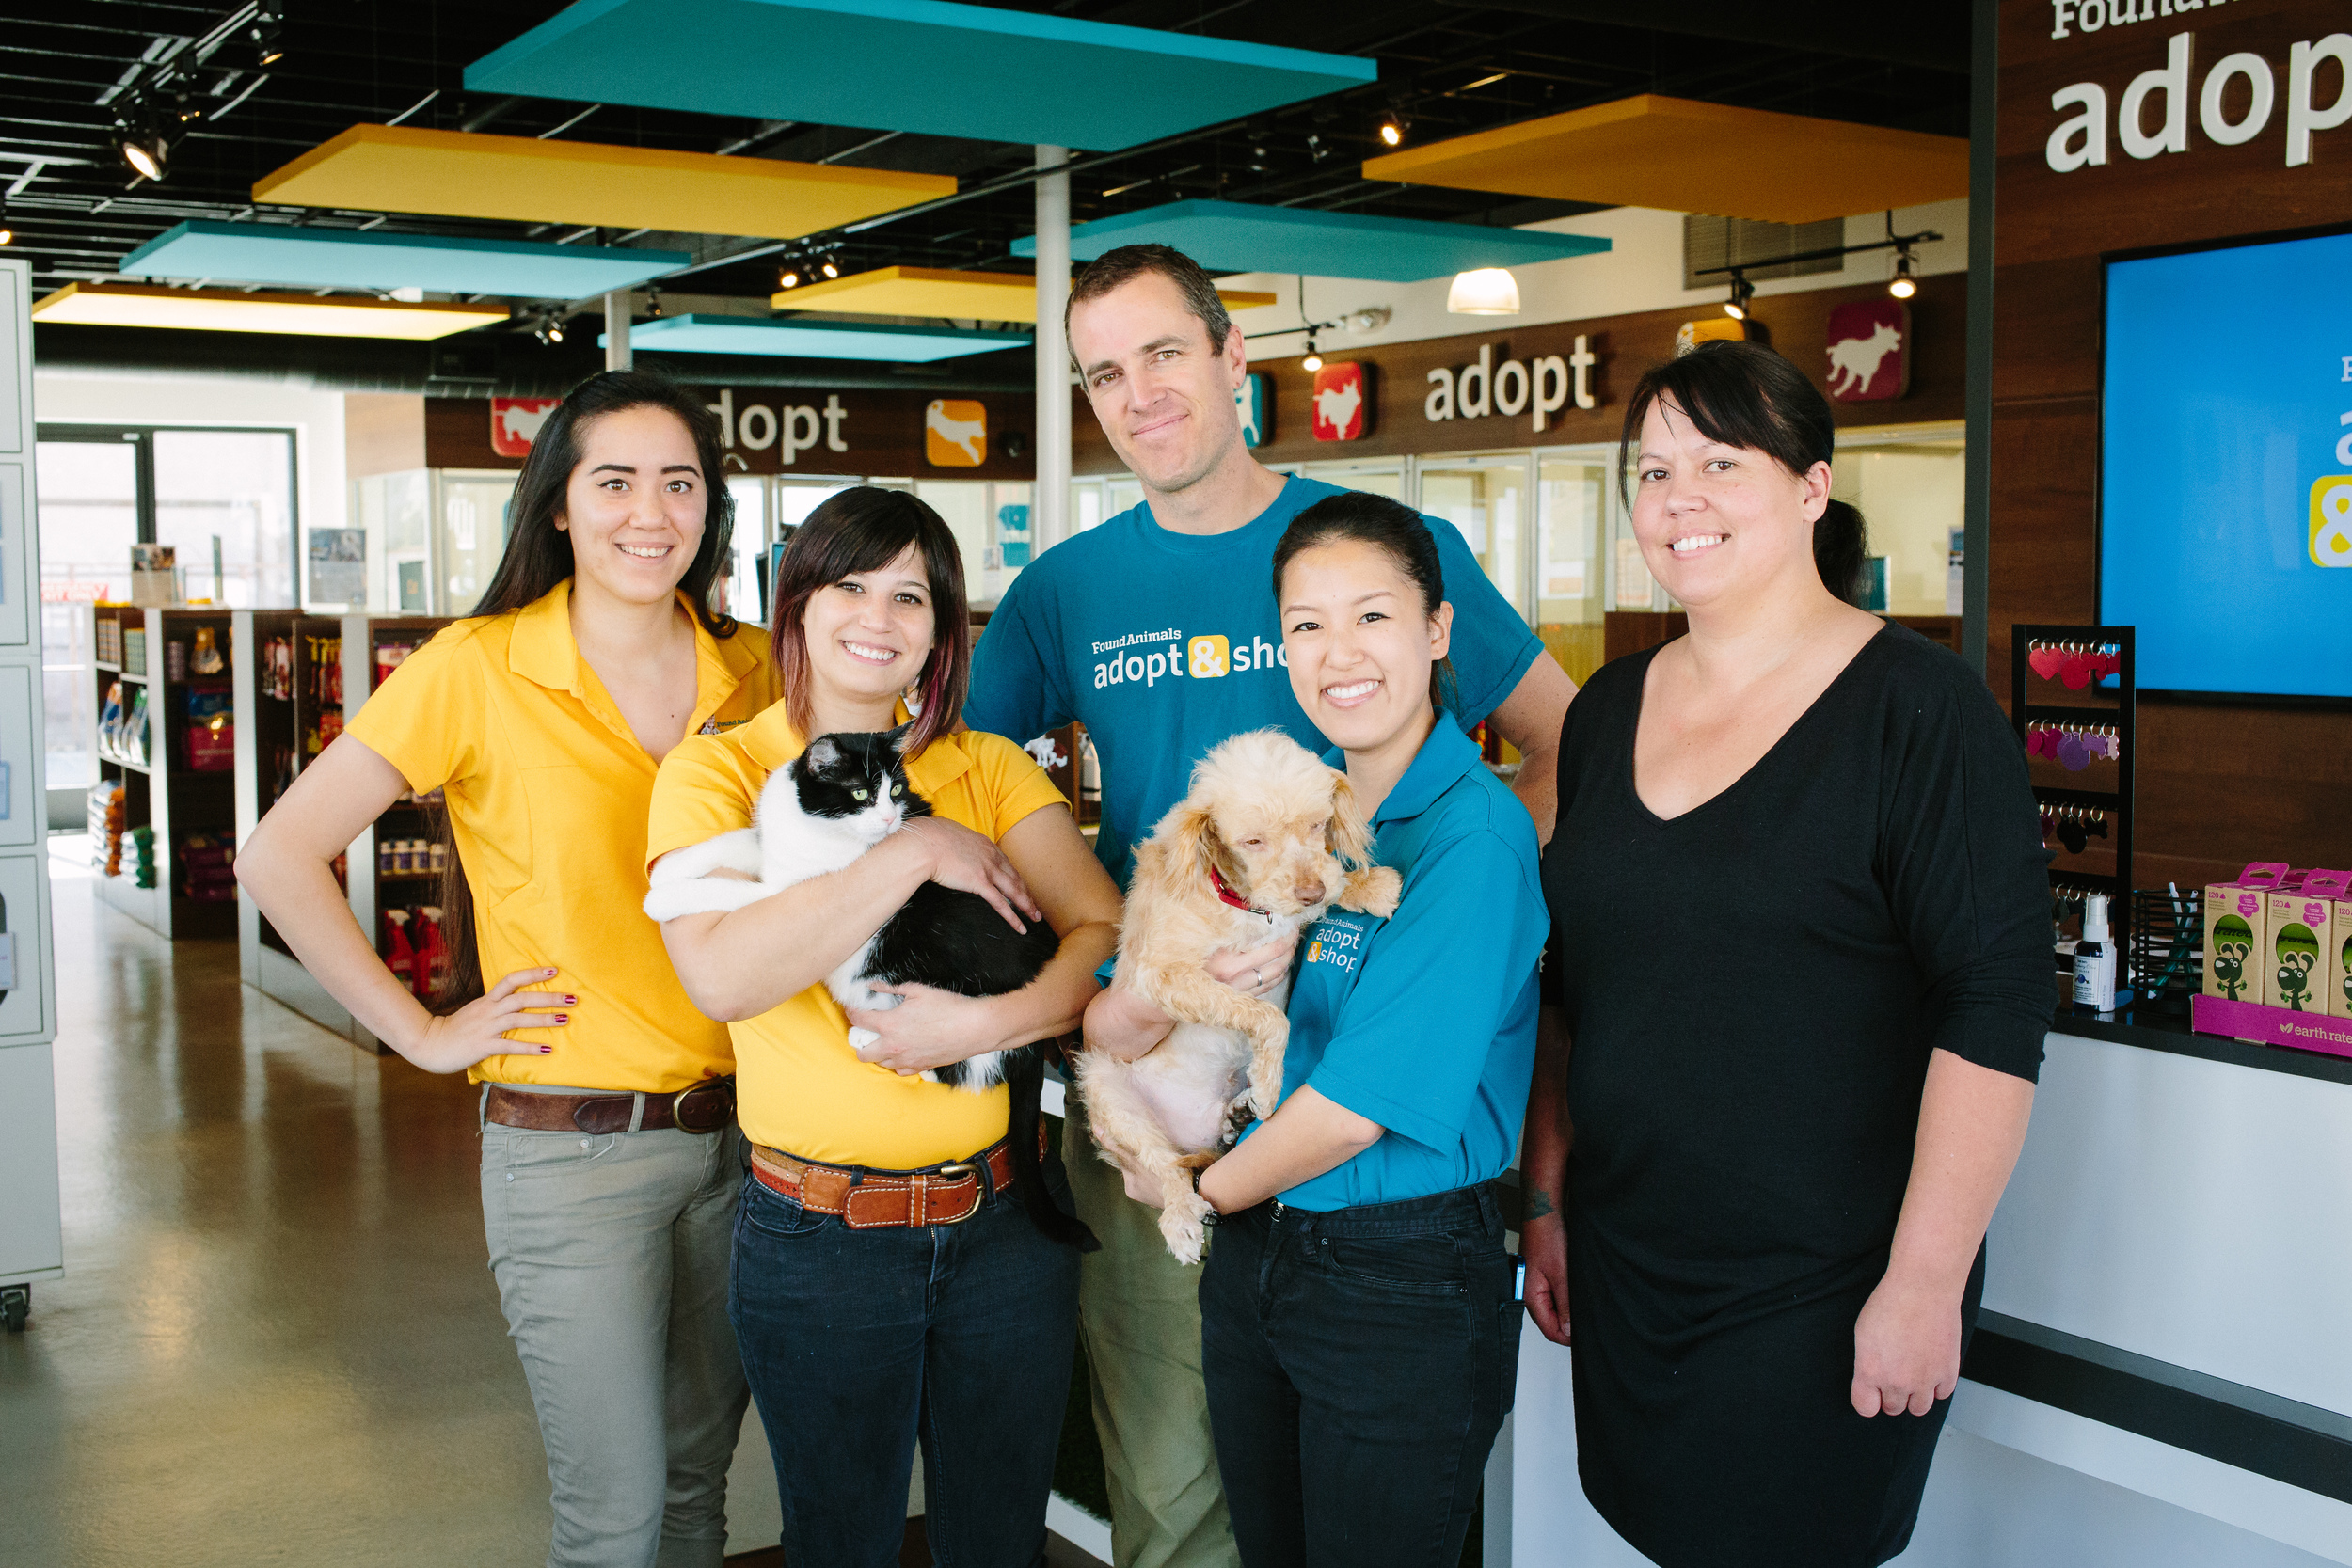 Google Corps volunteers work with Found Animals, an LA-based nonprofit, to help them with Apps training and marketing support, including assistance in building a new YouTube Channel to feature their Adopt & Shop retail locations.